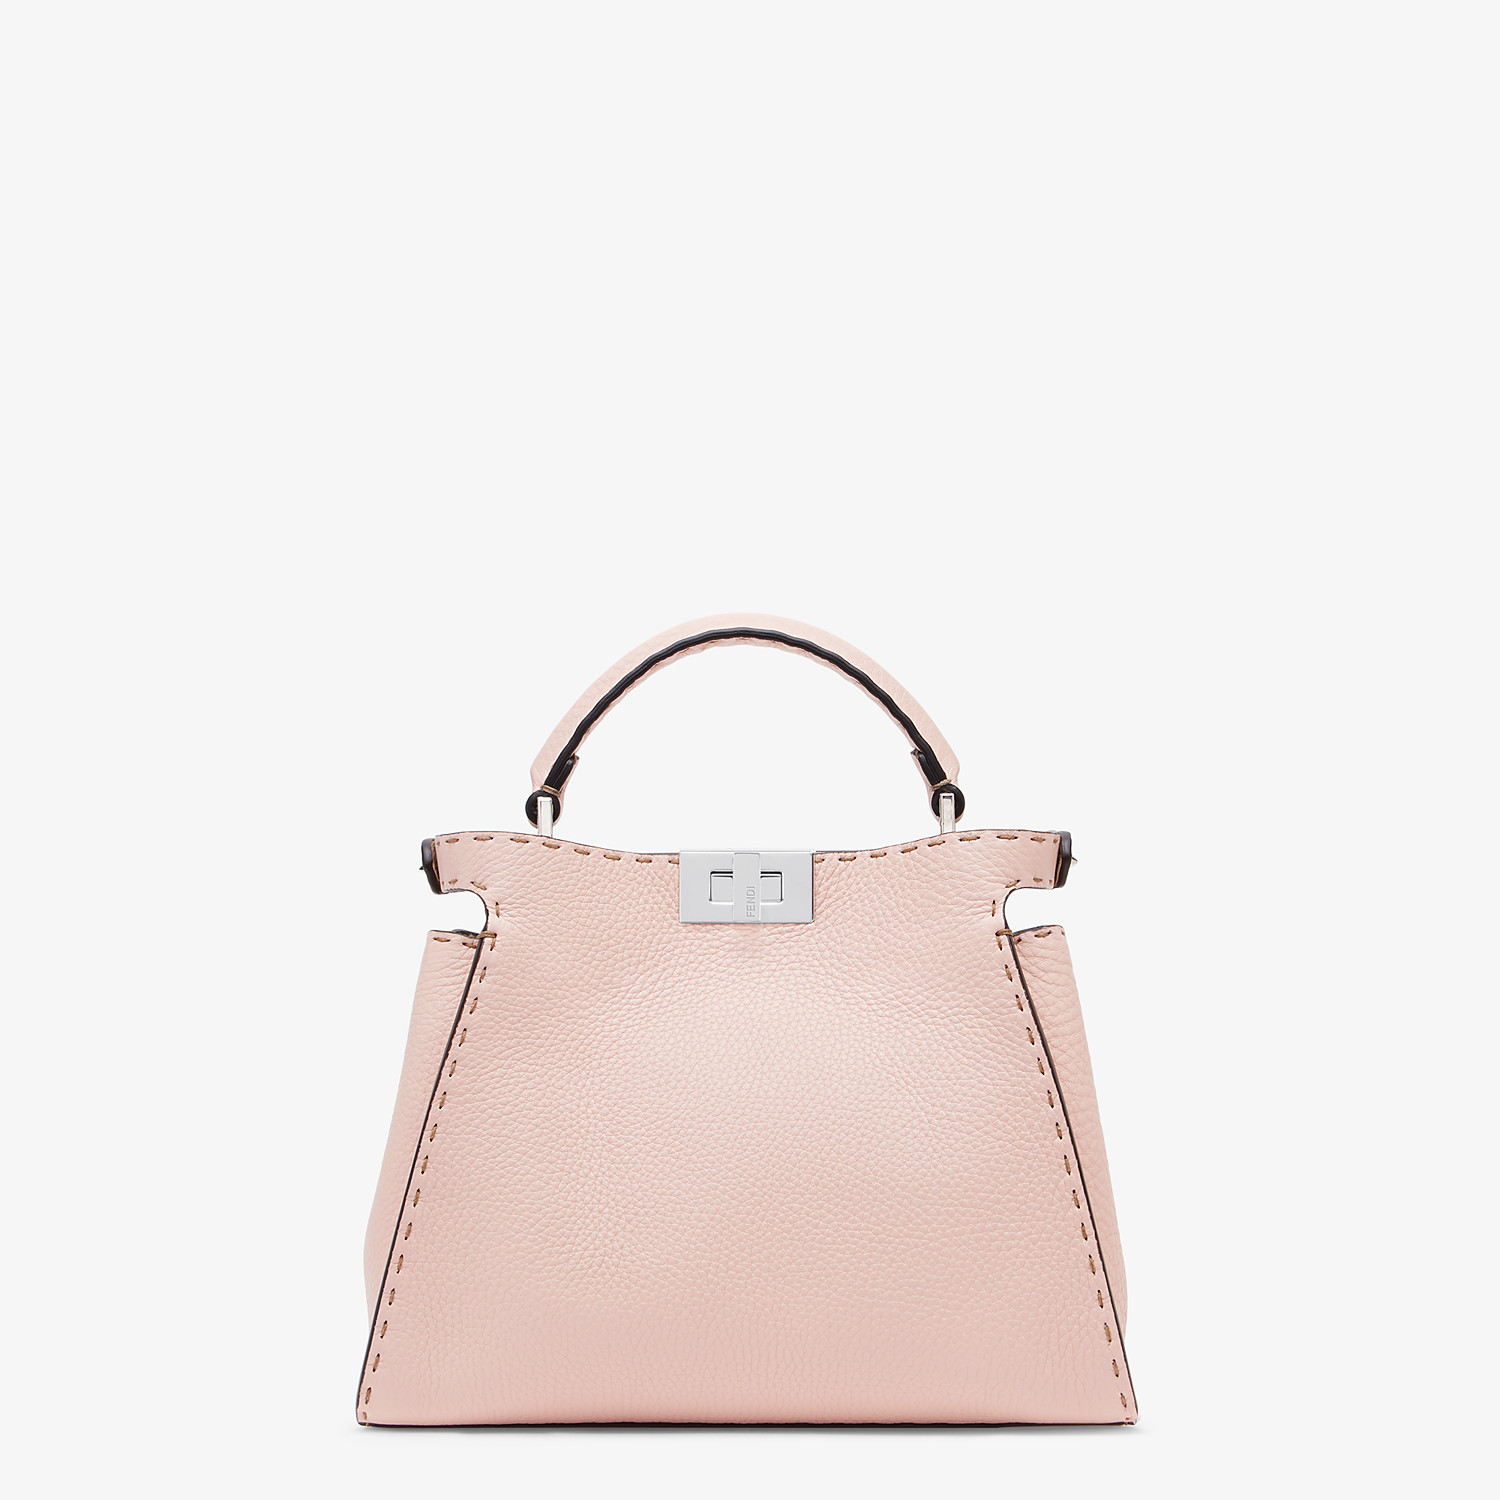 FENDI PEEKABOO ICONIC ESSENTIALLY - Pink leather bag - view 3 detail